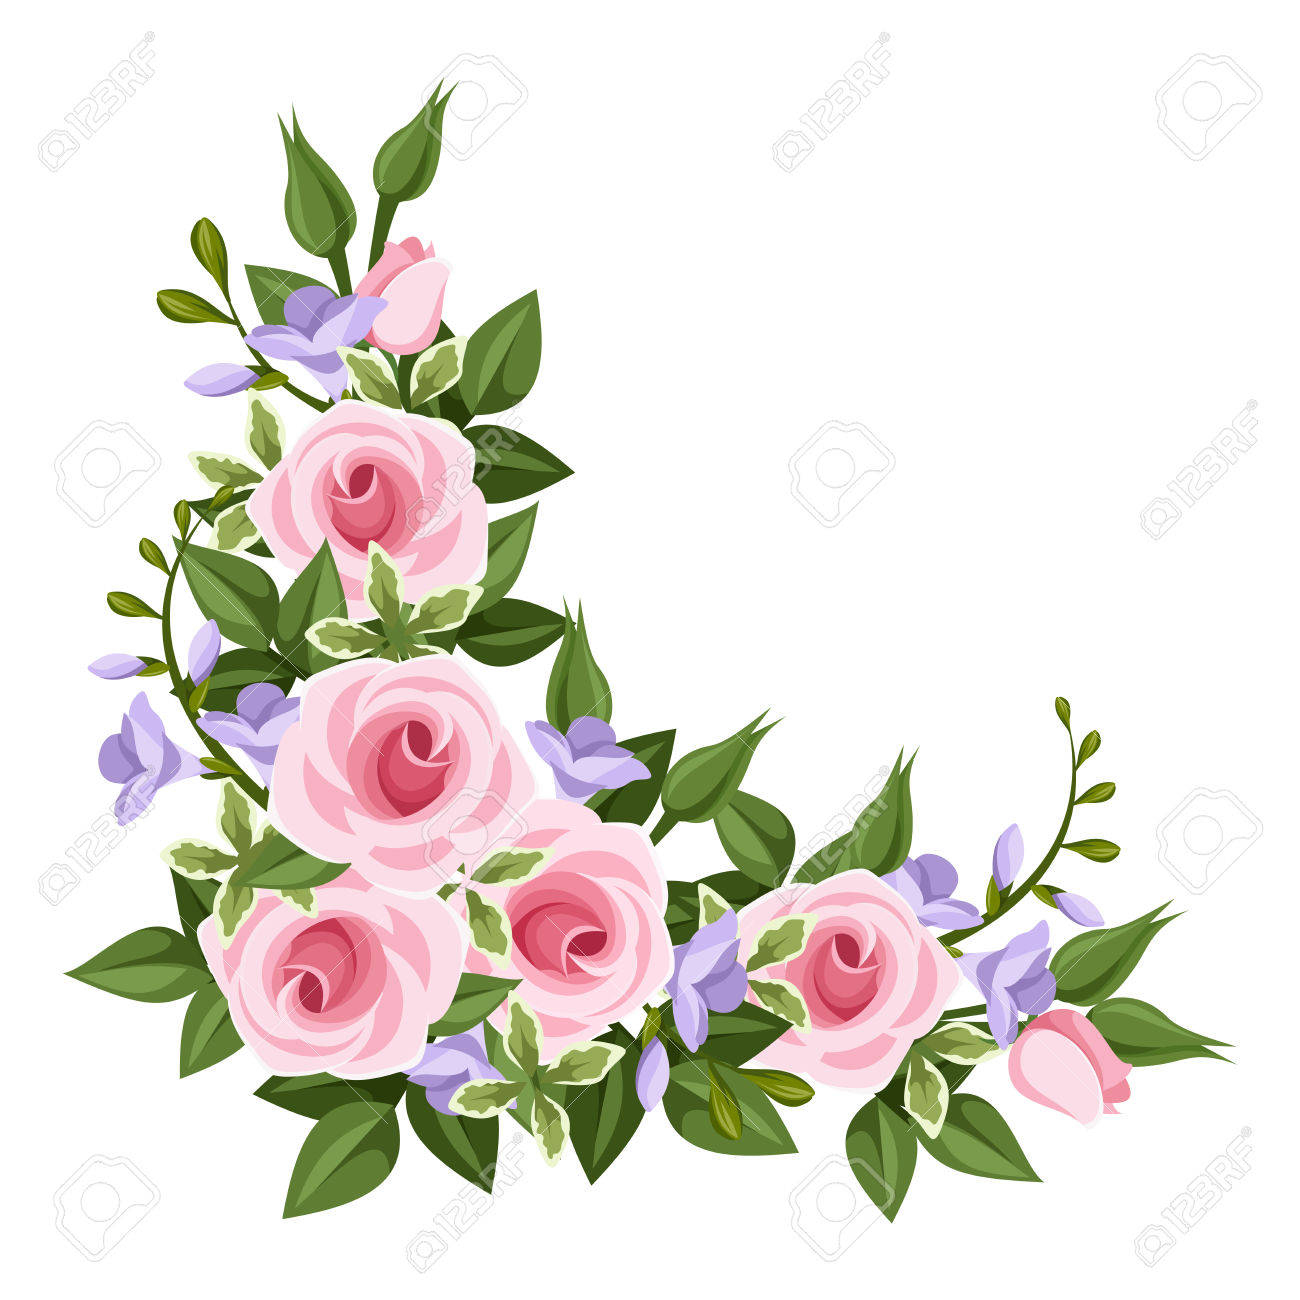 Pink flower borders free download best pink flower borders on 1300x1300 pink rose clipart floral corner borders mightylinksfo